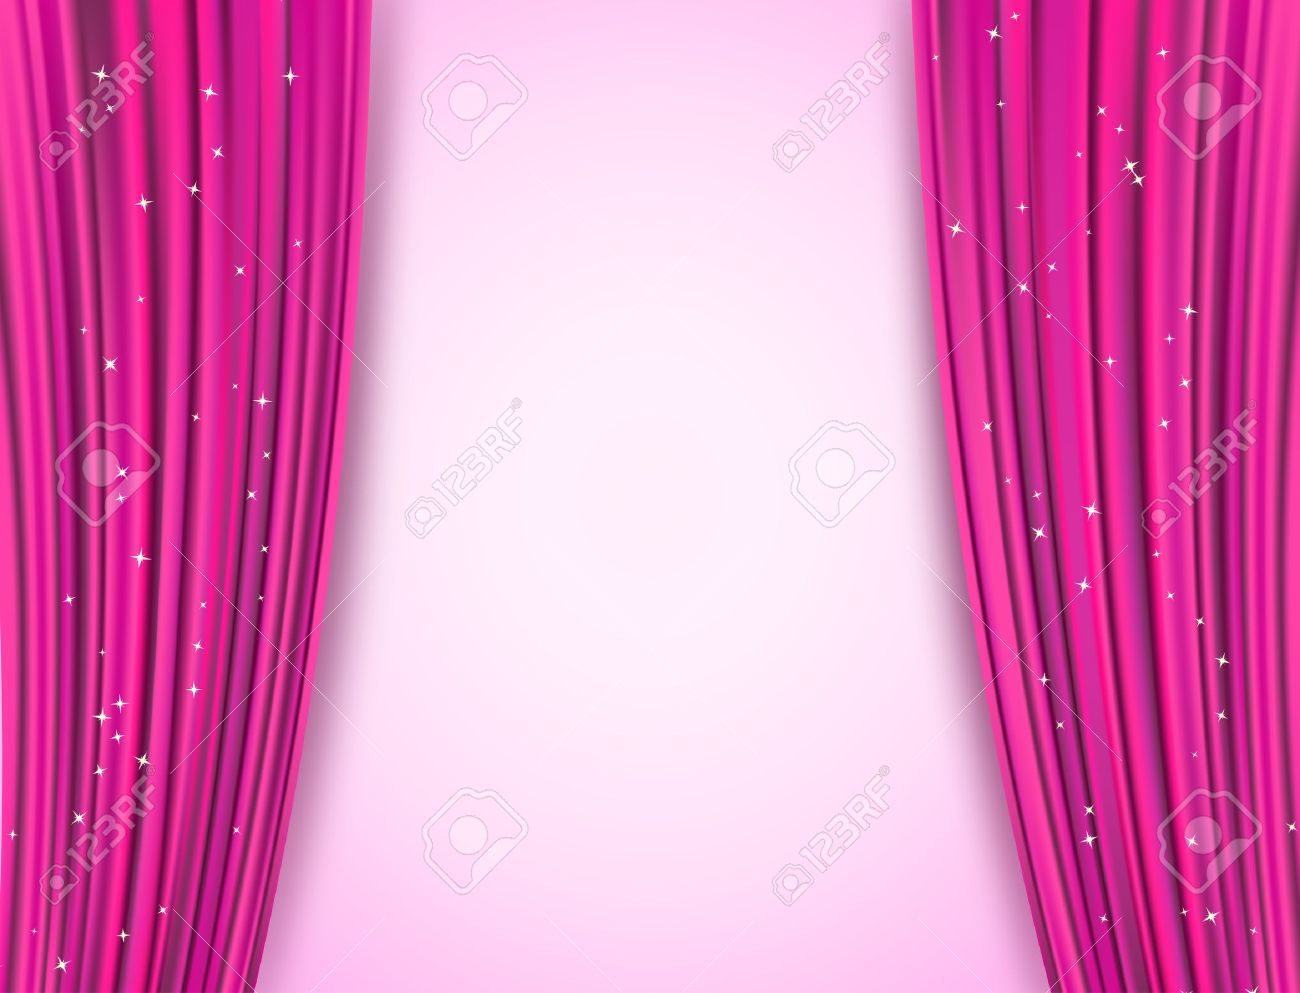 Pink Theater Curtains With Glitter. Abstract Background With ... for Pink Curtains Background  104xkb